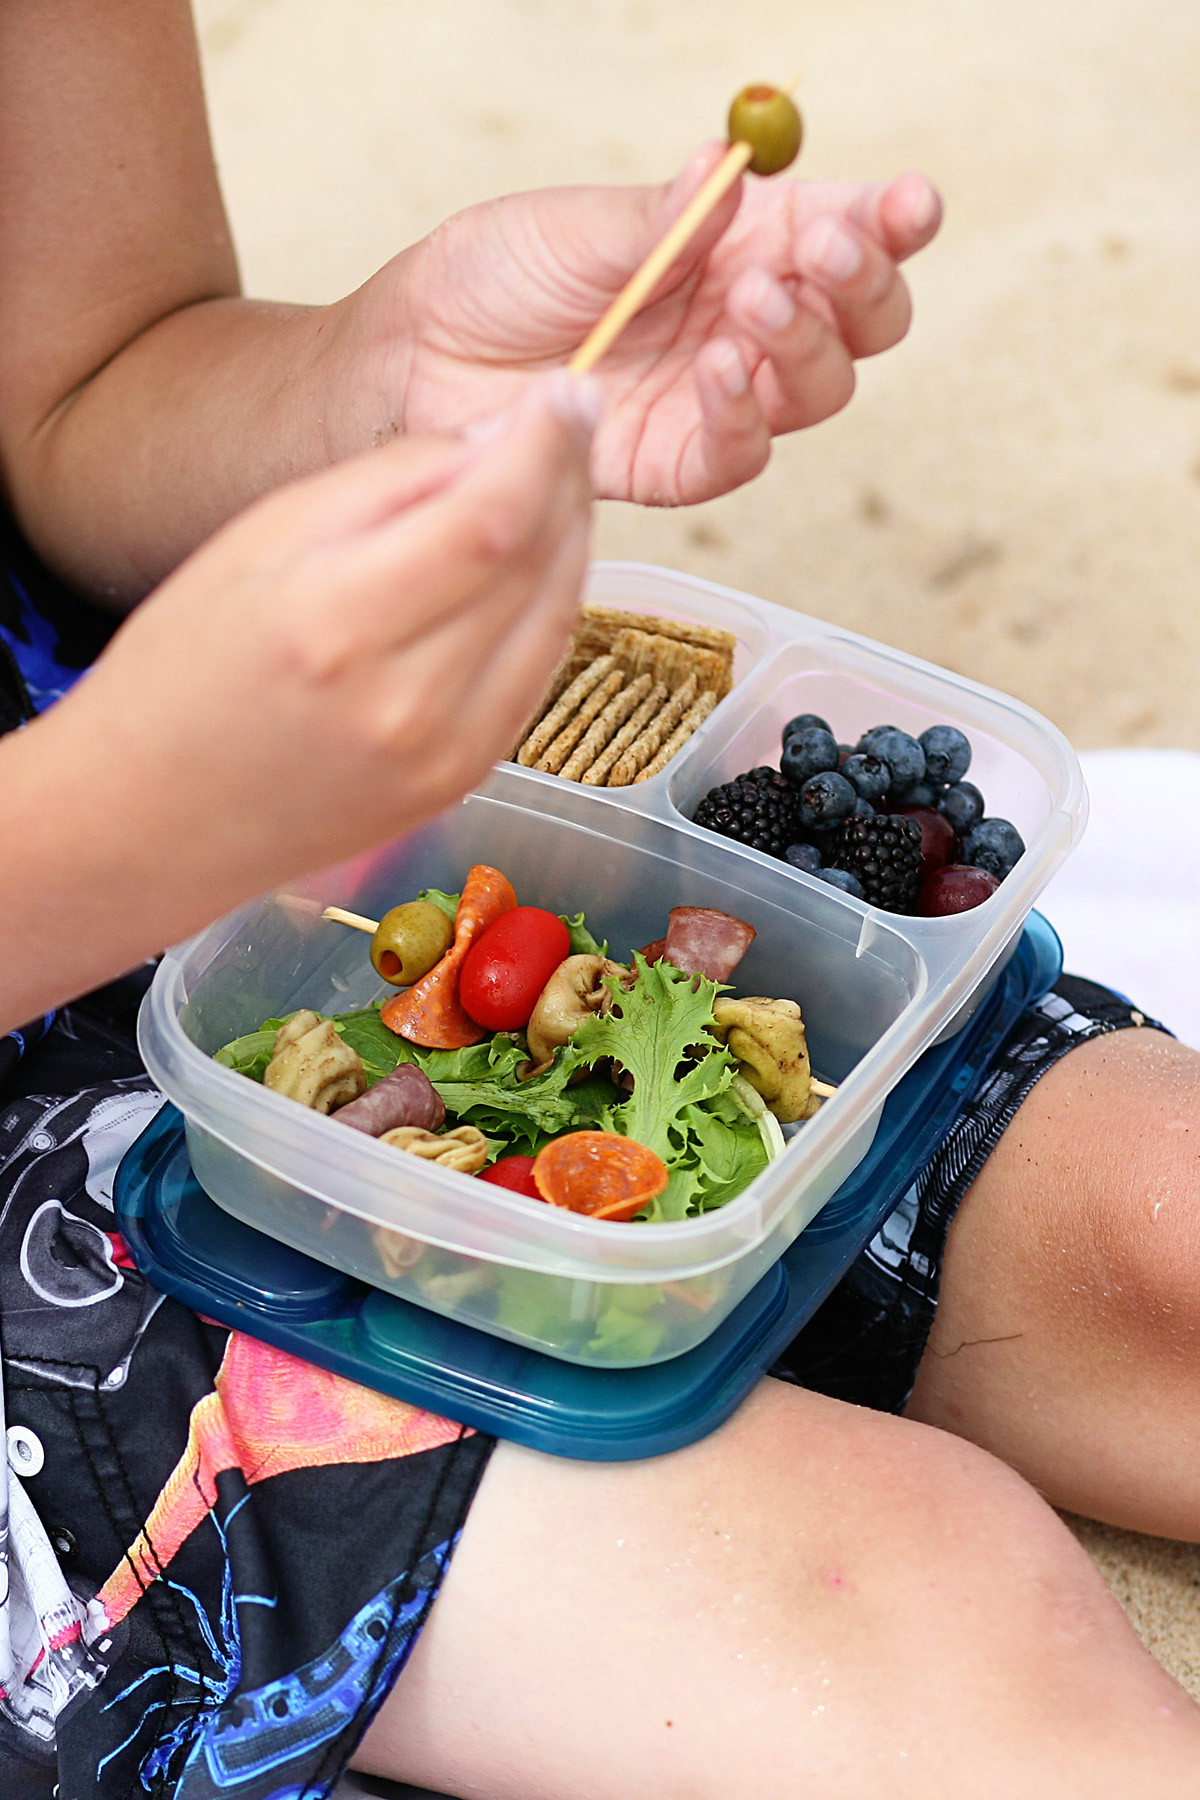 Packing Healthy Lunches  Tools for Packing Healthy School Lunches Recipes